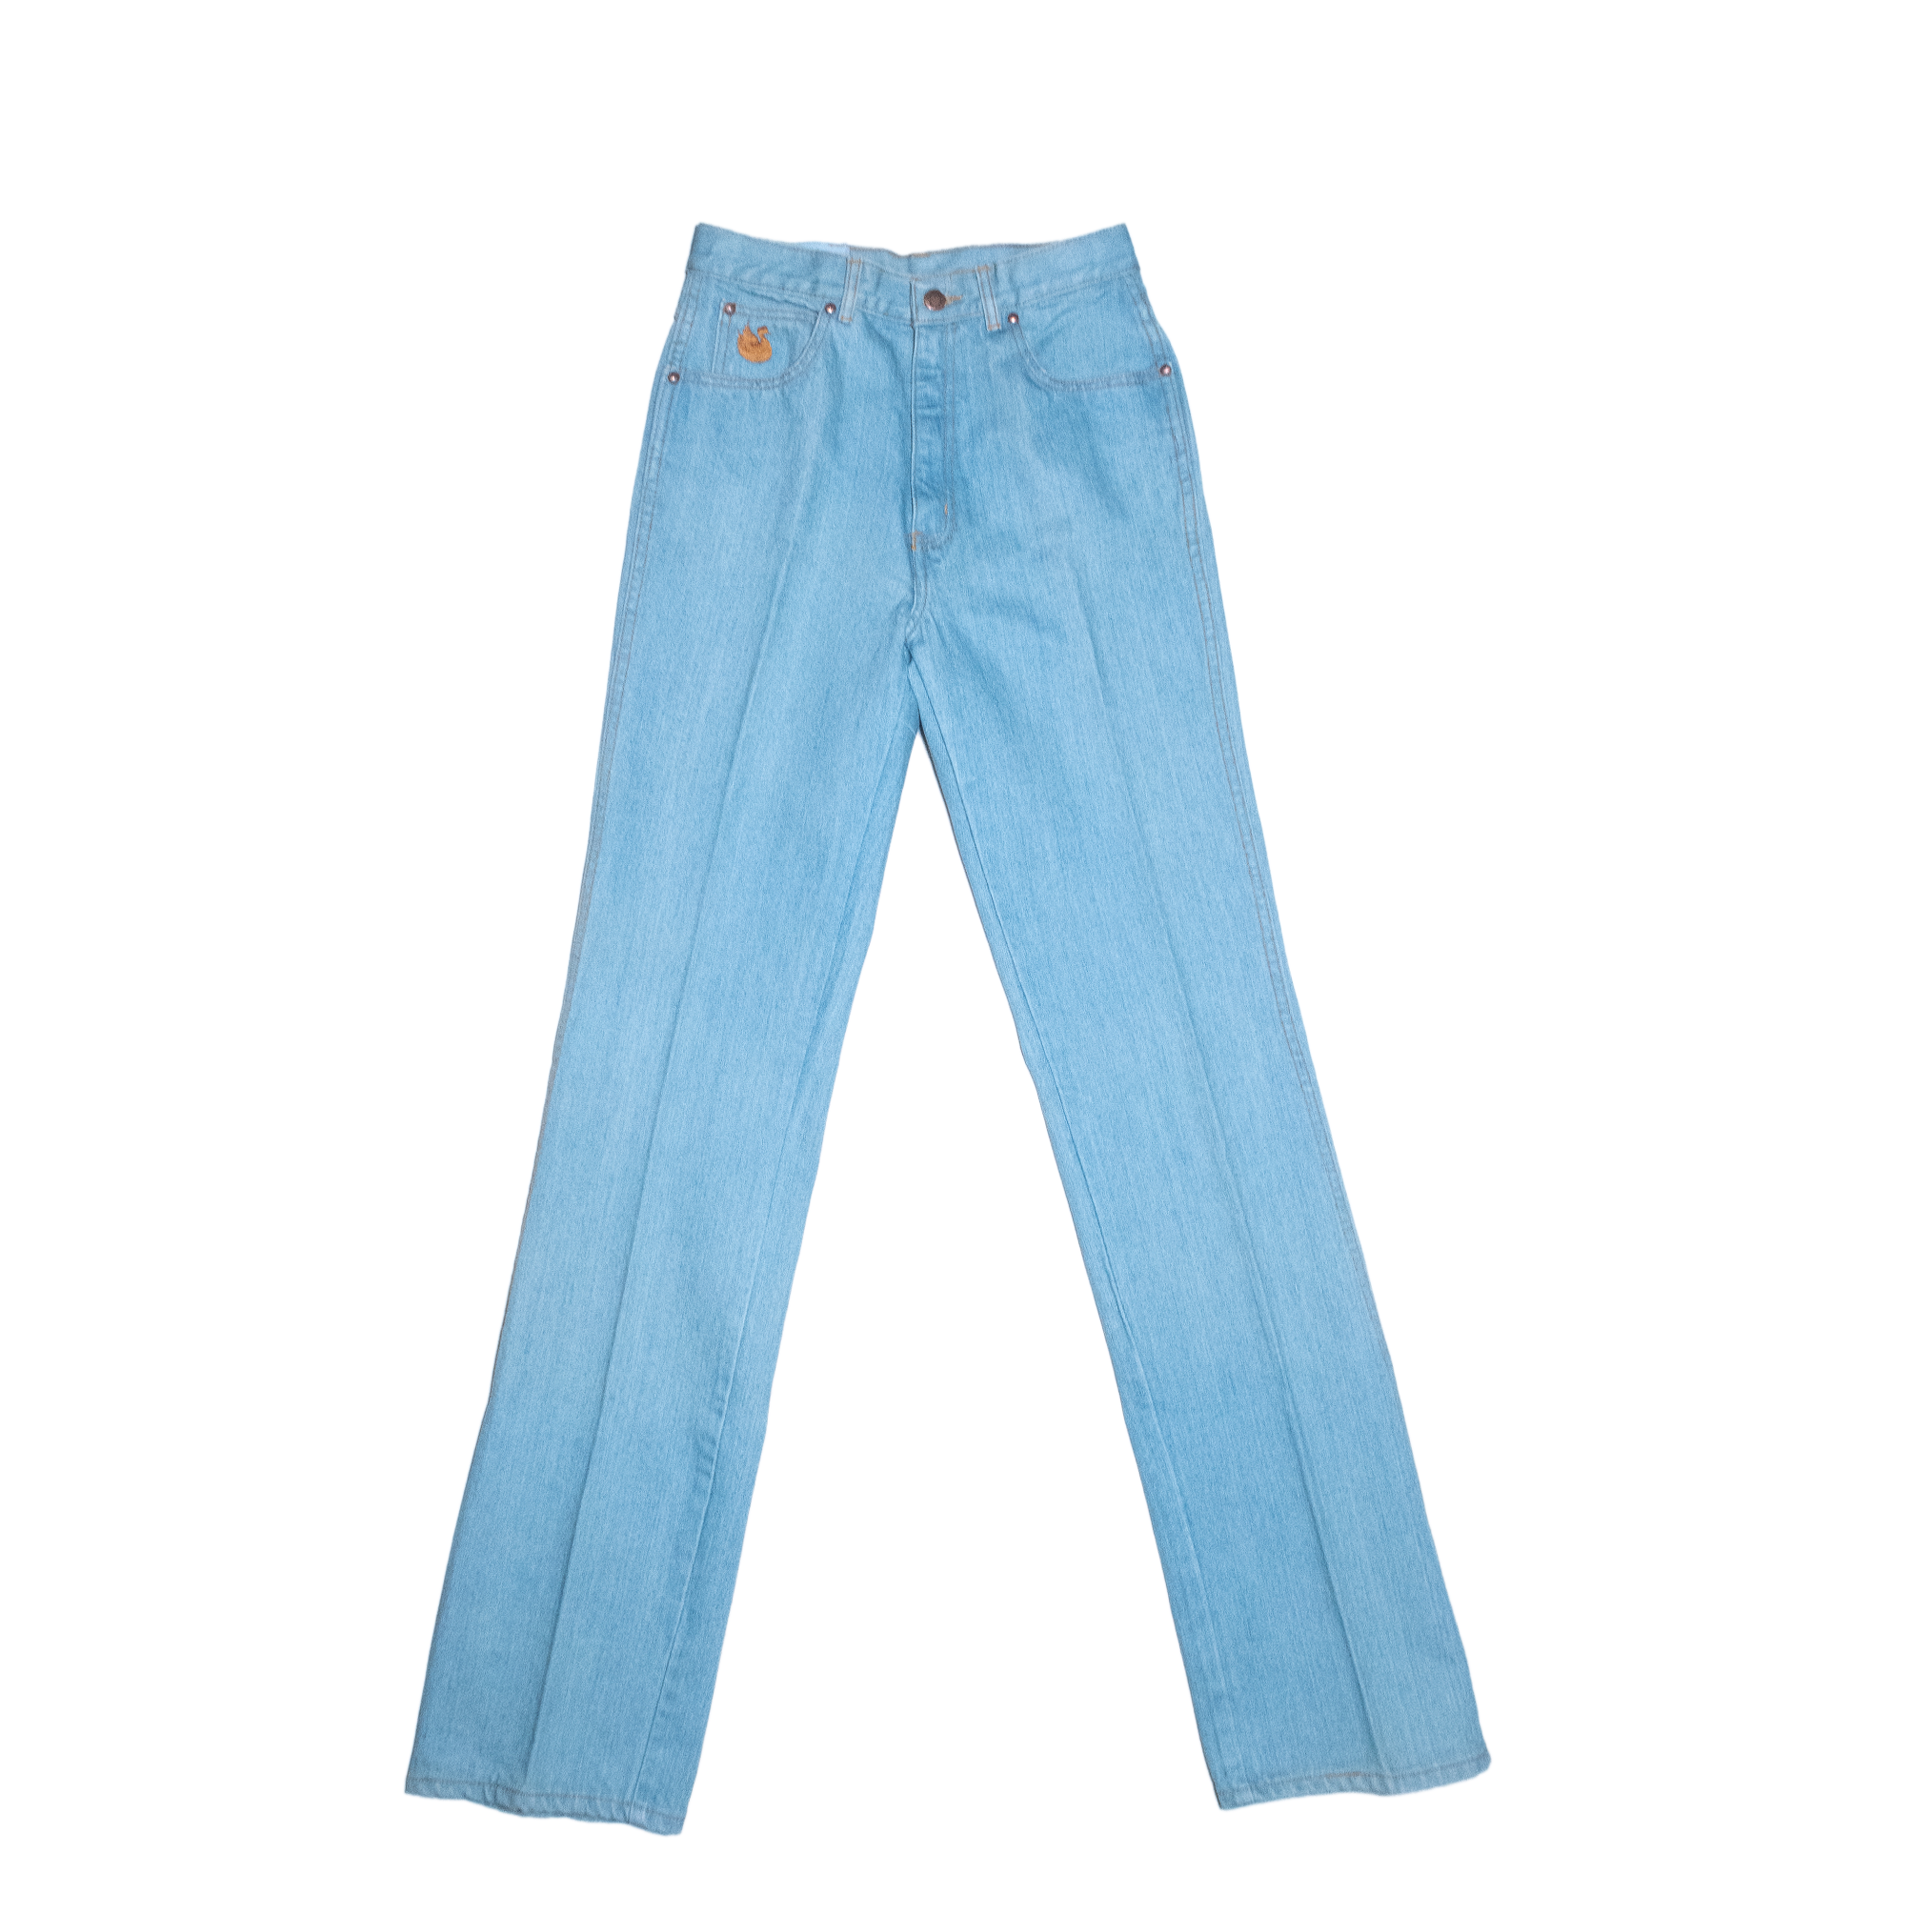 Hand Picked Vintage: Gloria Vanderbilt for Murjani Denim Trouser